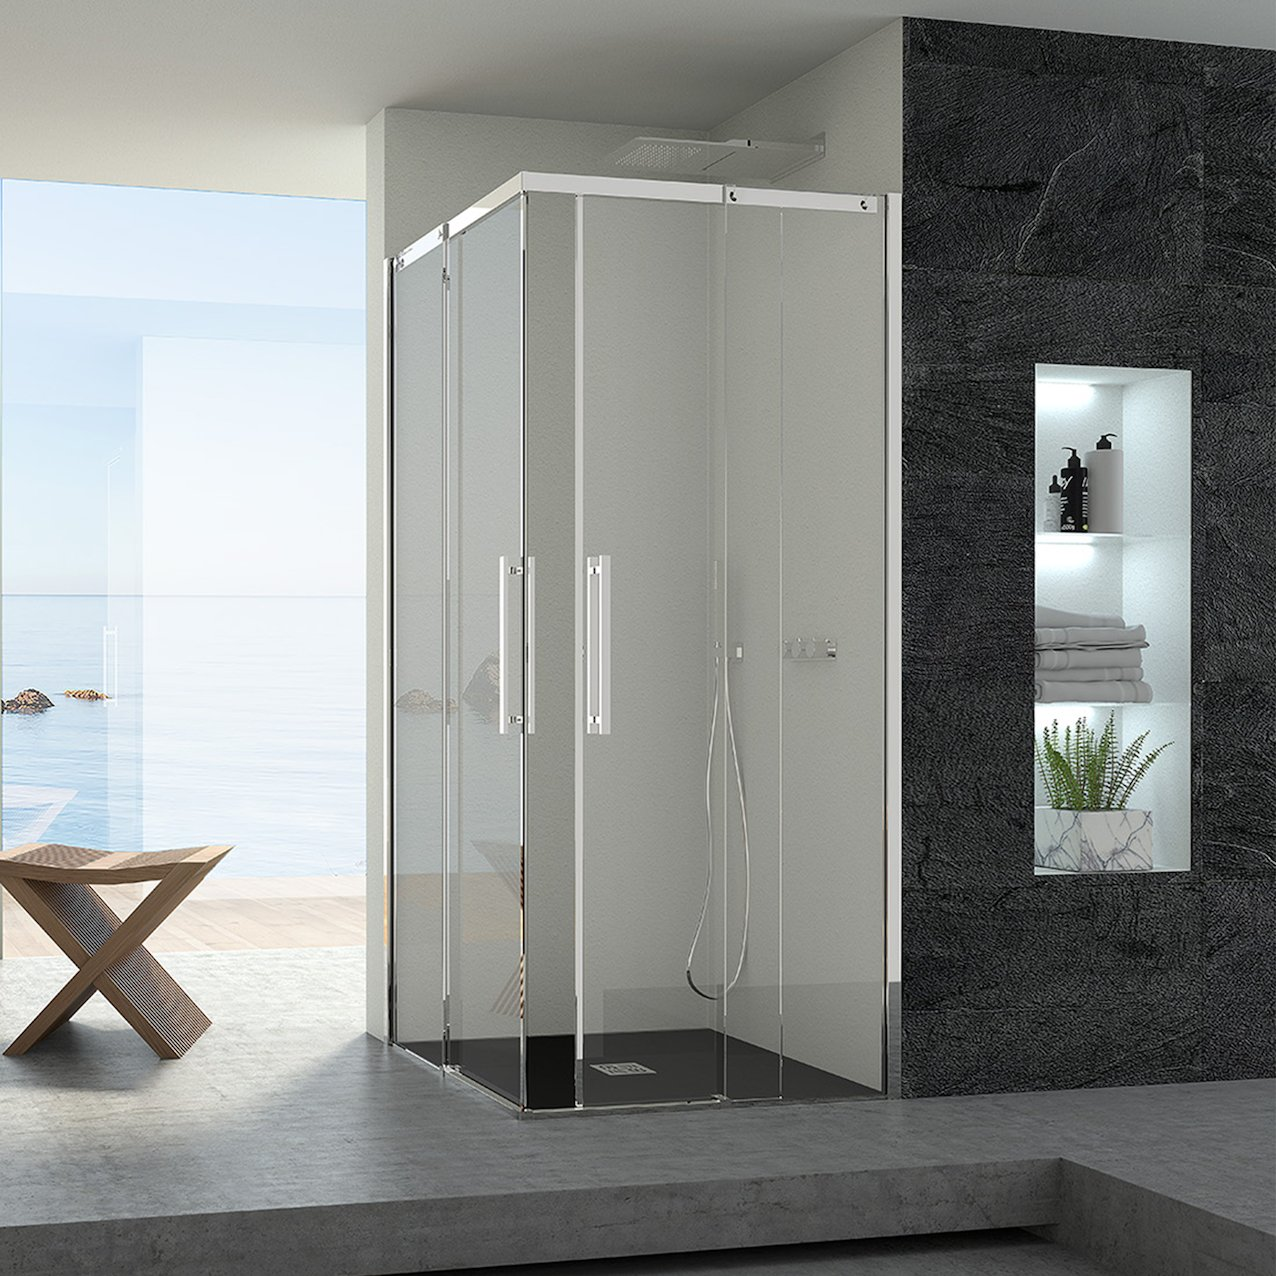 Sliding Shower Enclosure Sentinel